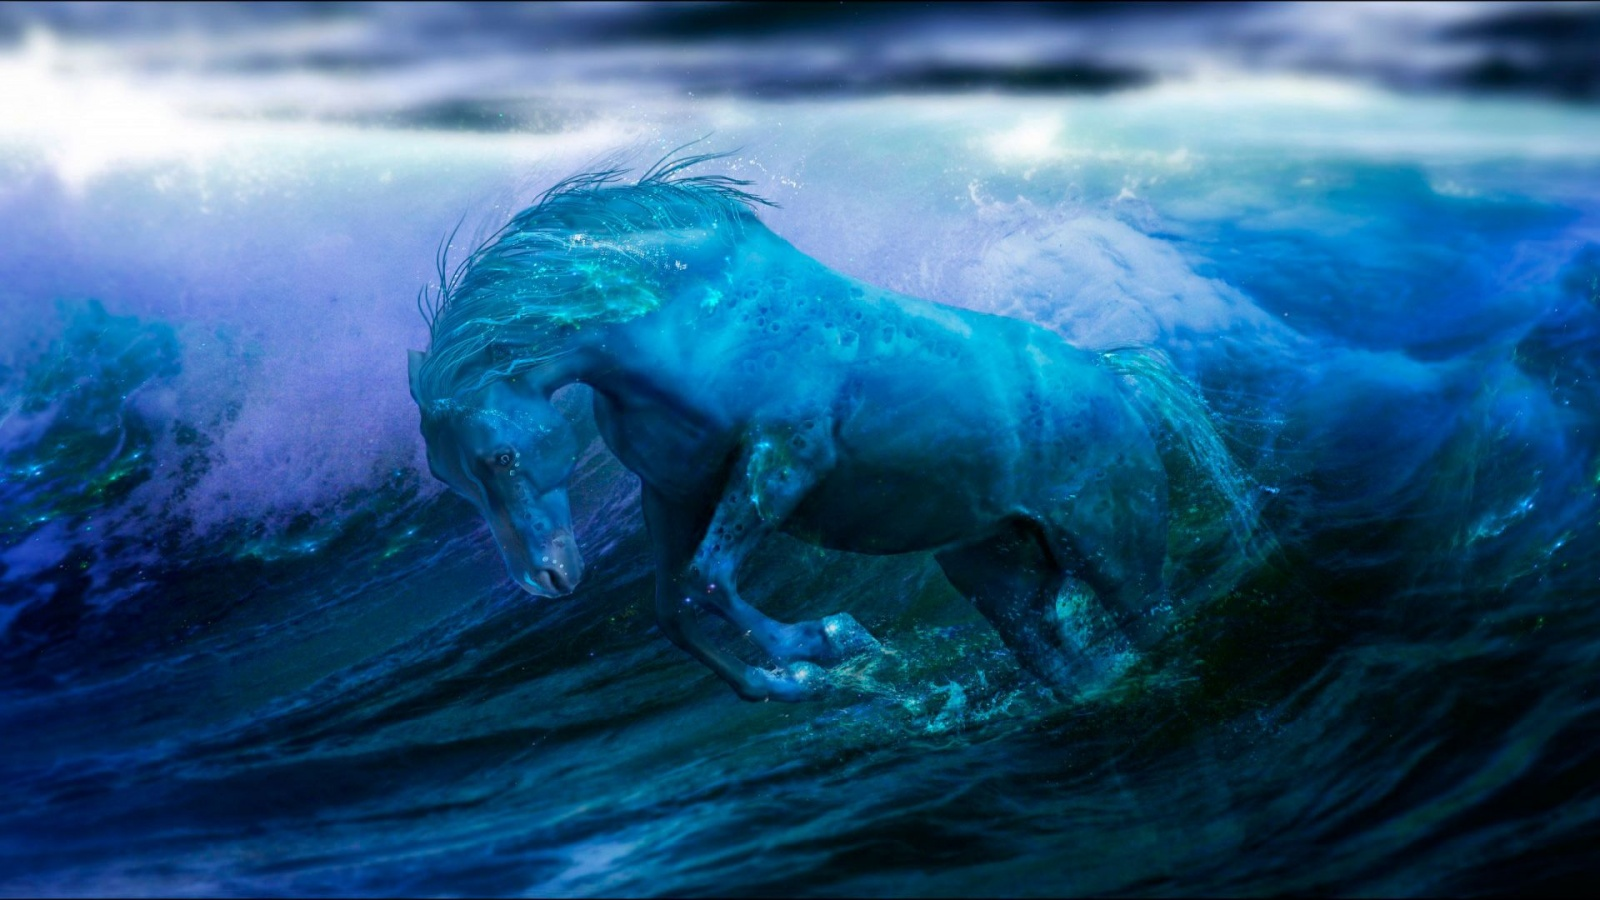 Water horse wallpaper - photo#4